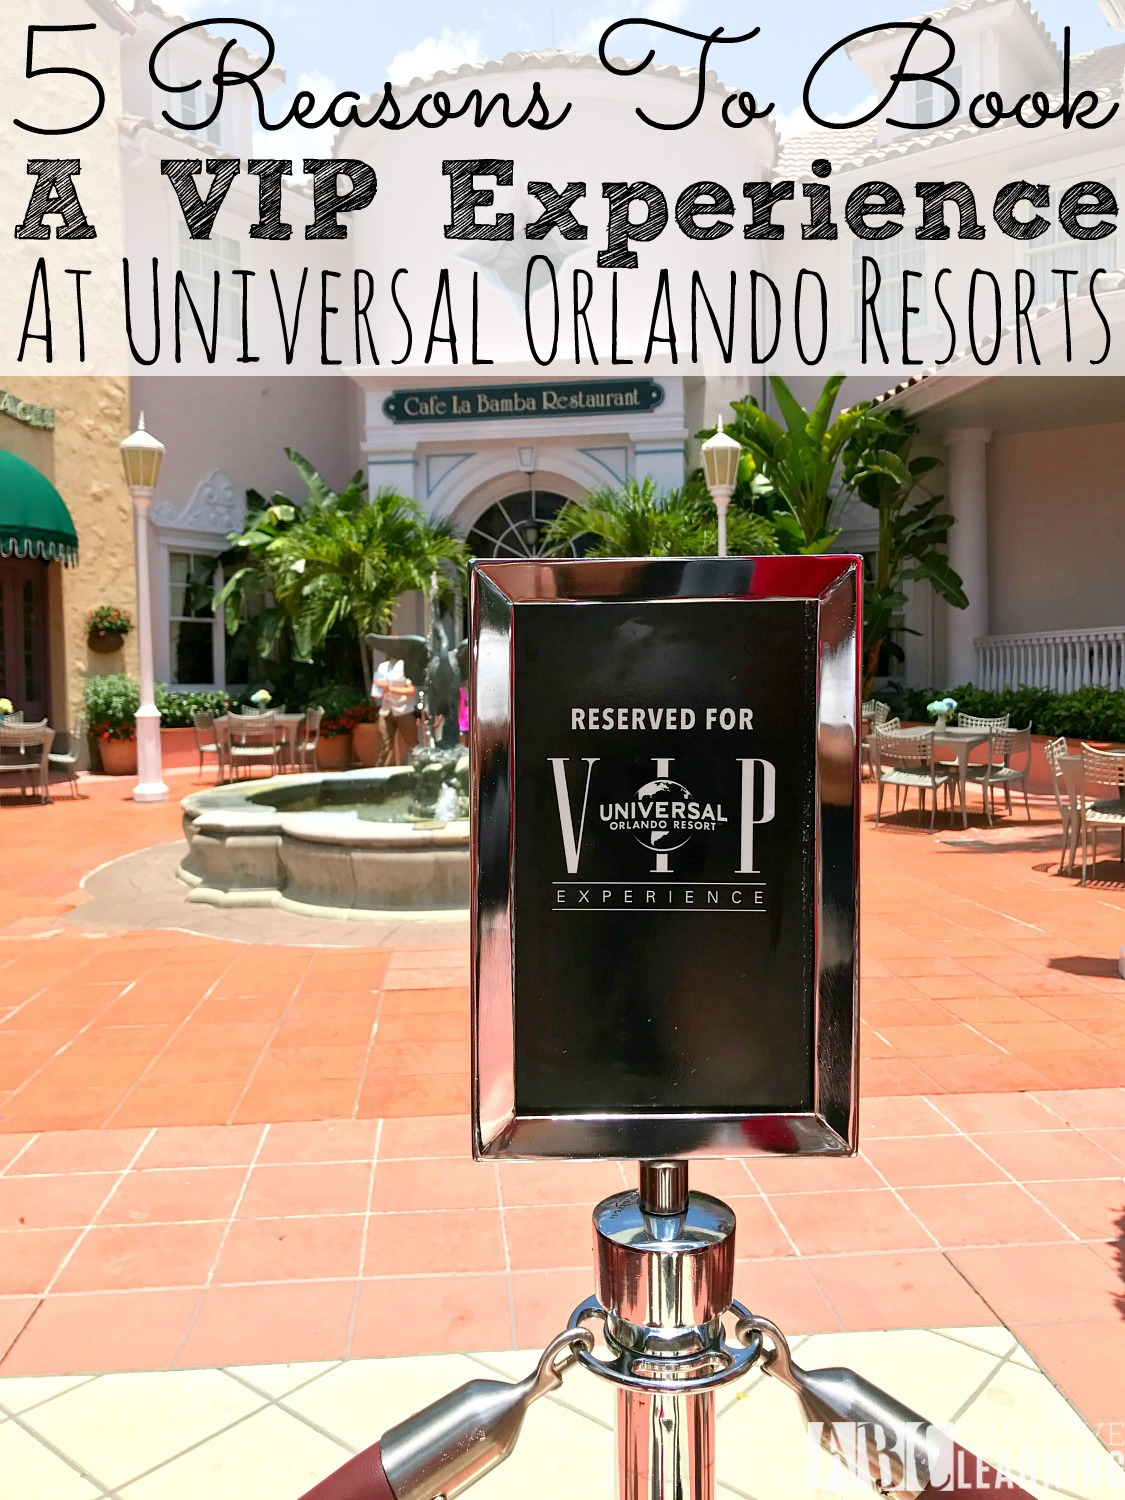 Reasons to book a VIP Experience at Universal Orlando Resort